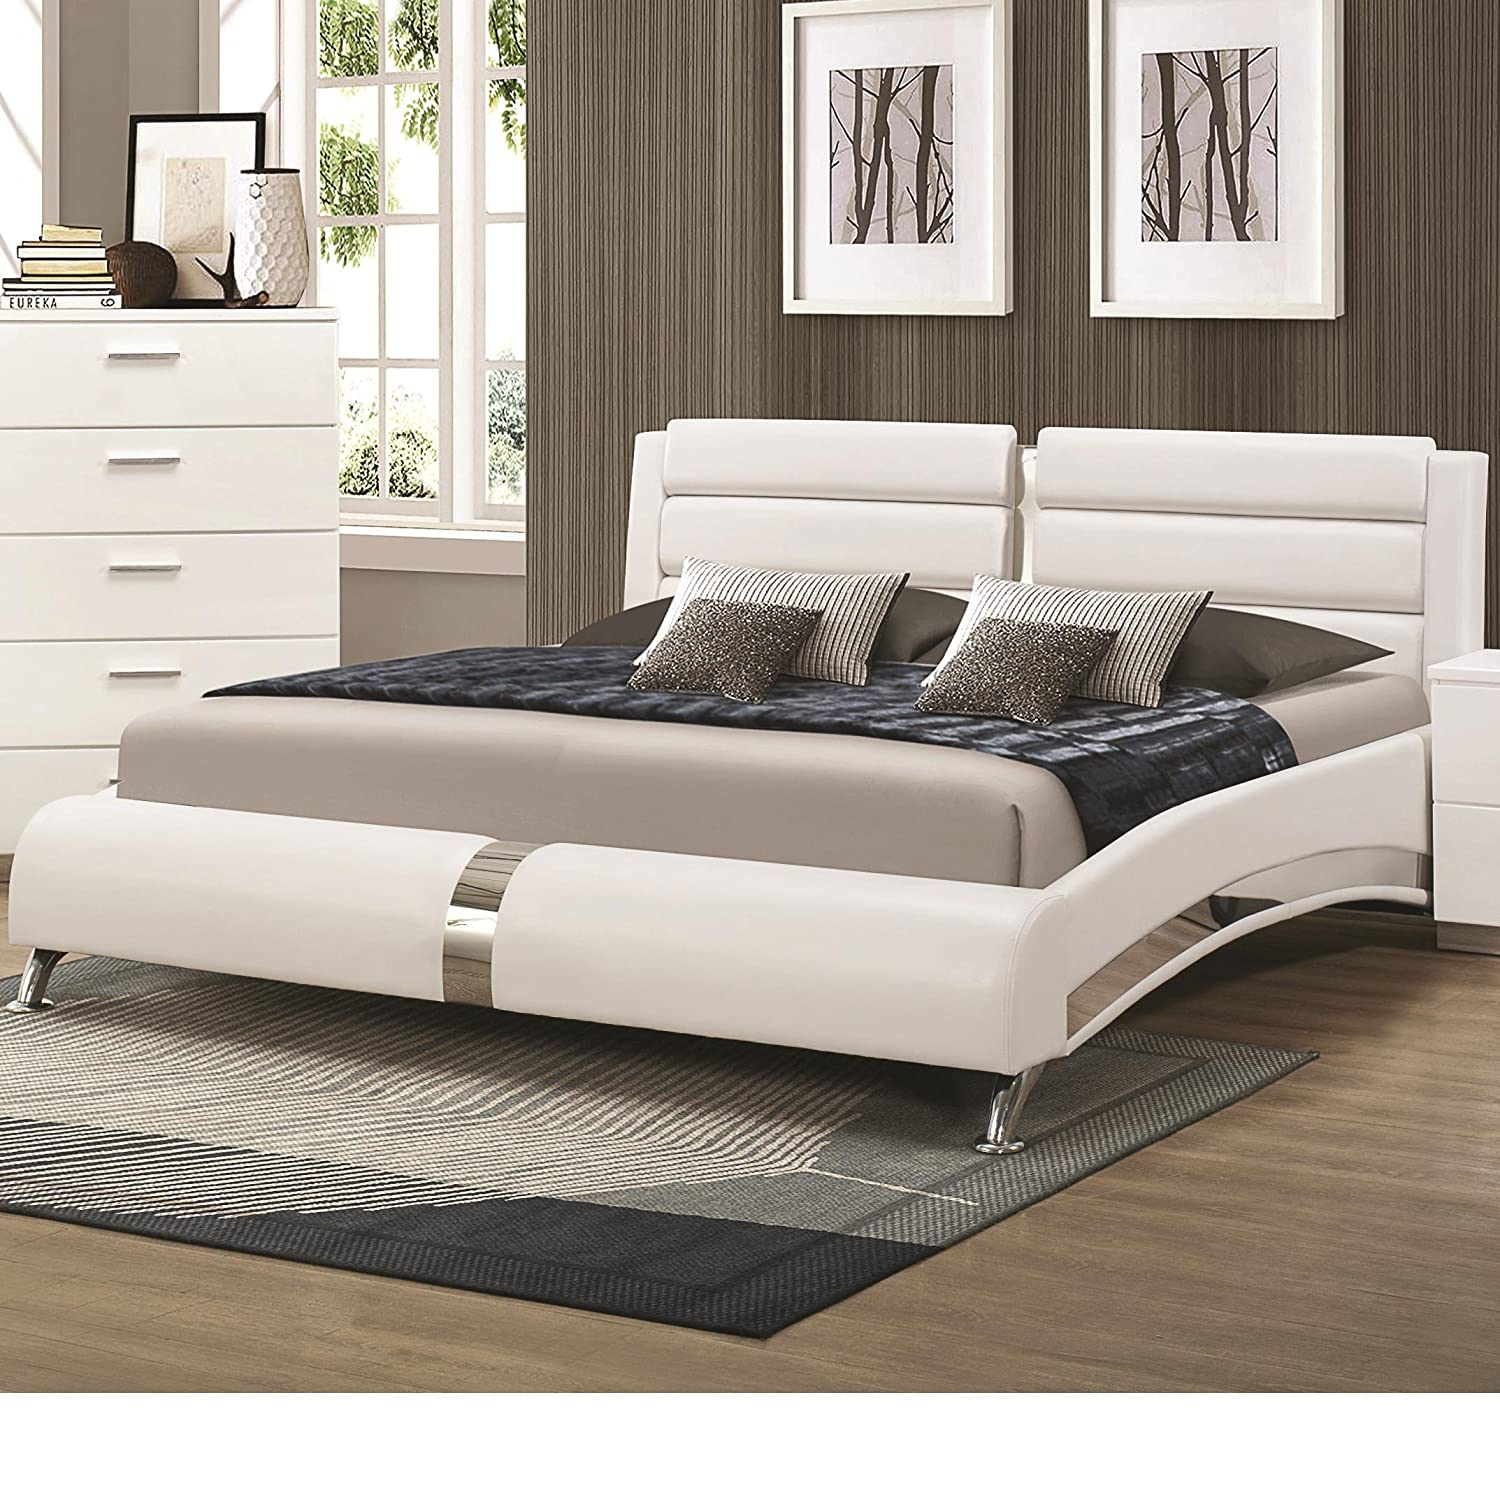 amazoncom coaster kw white california king size bed with  - amazoncom coaster kw white california king size bed with metallicaccents kitchen  dining